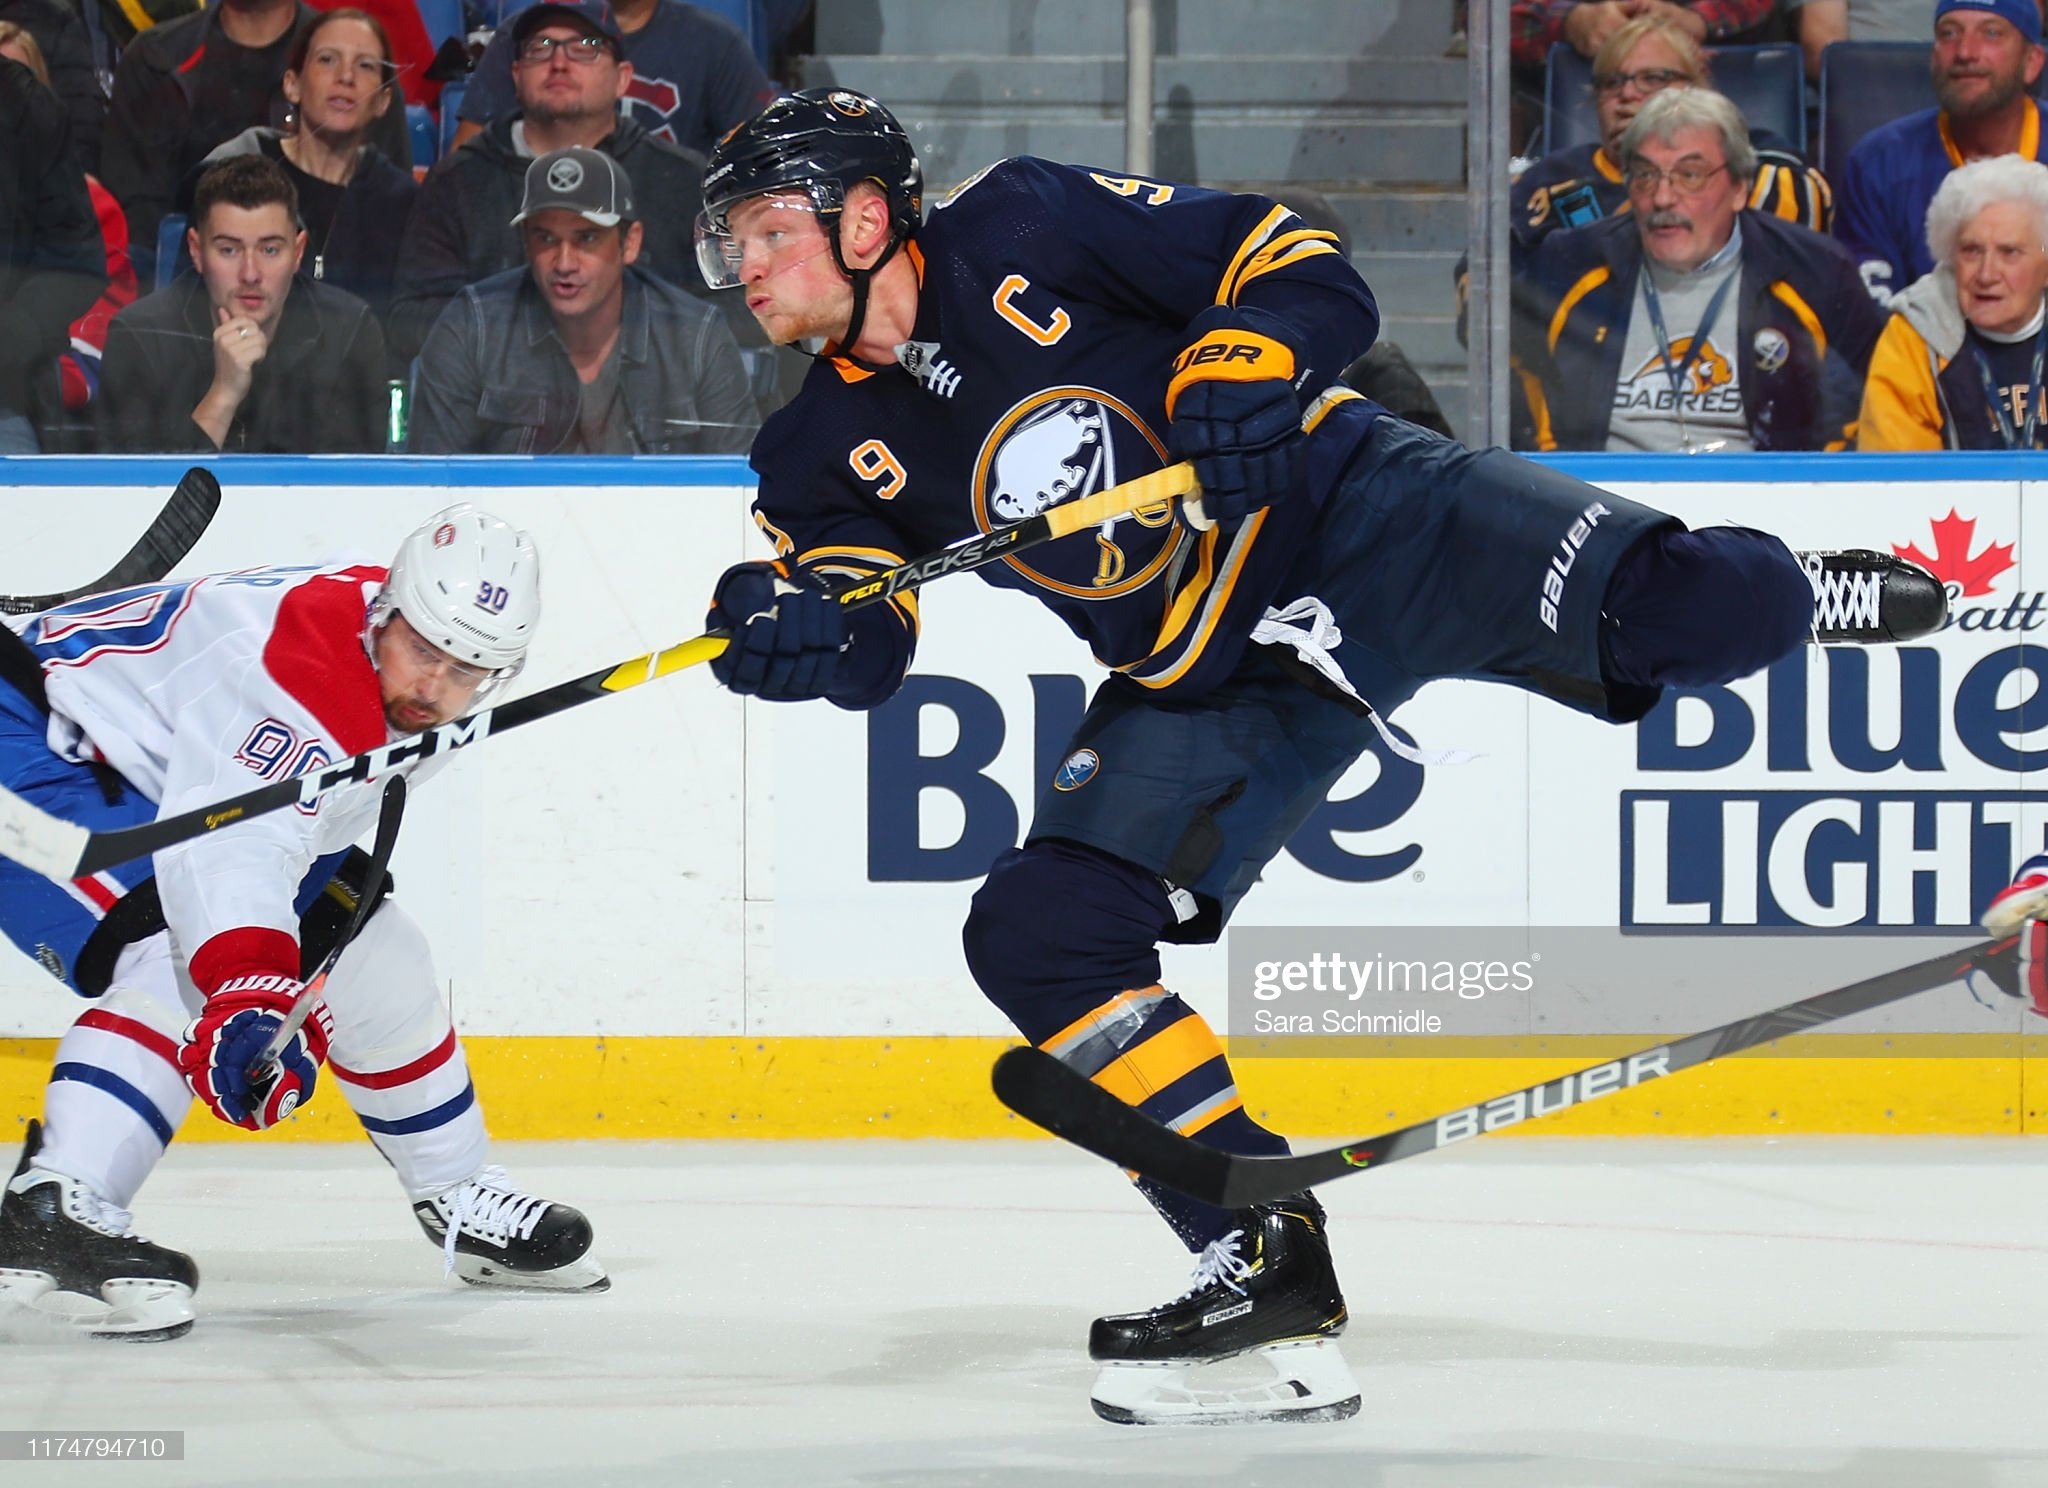 jack-eichel-of-the-buffalo-sabres-fires-